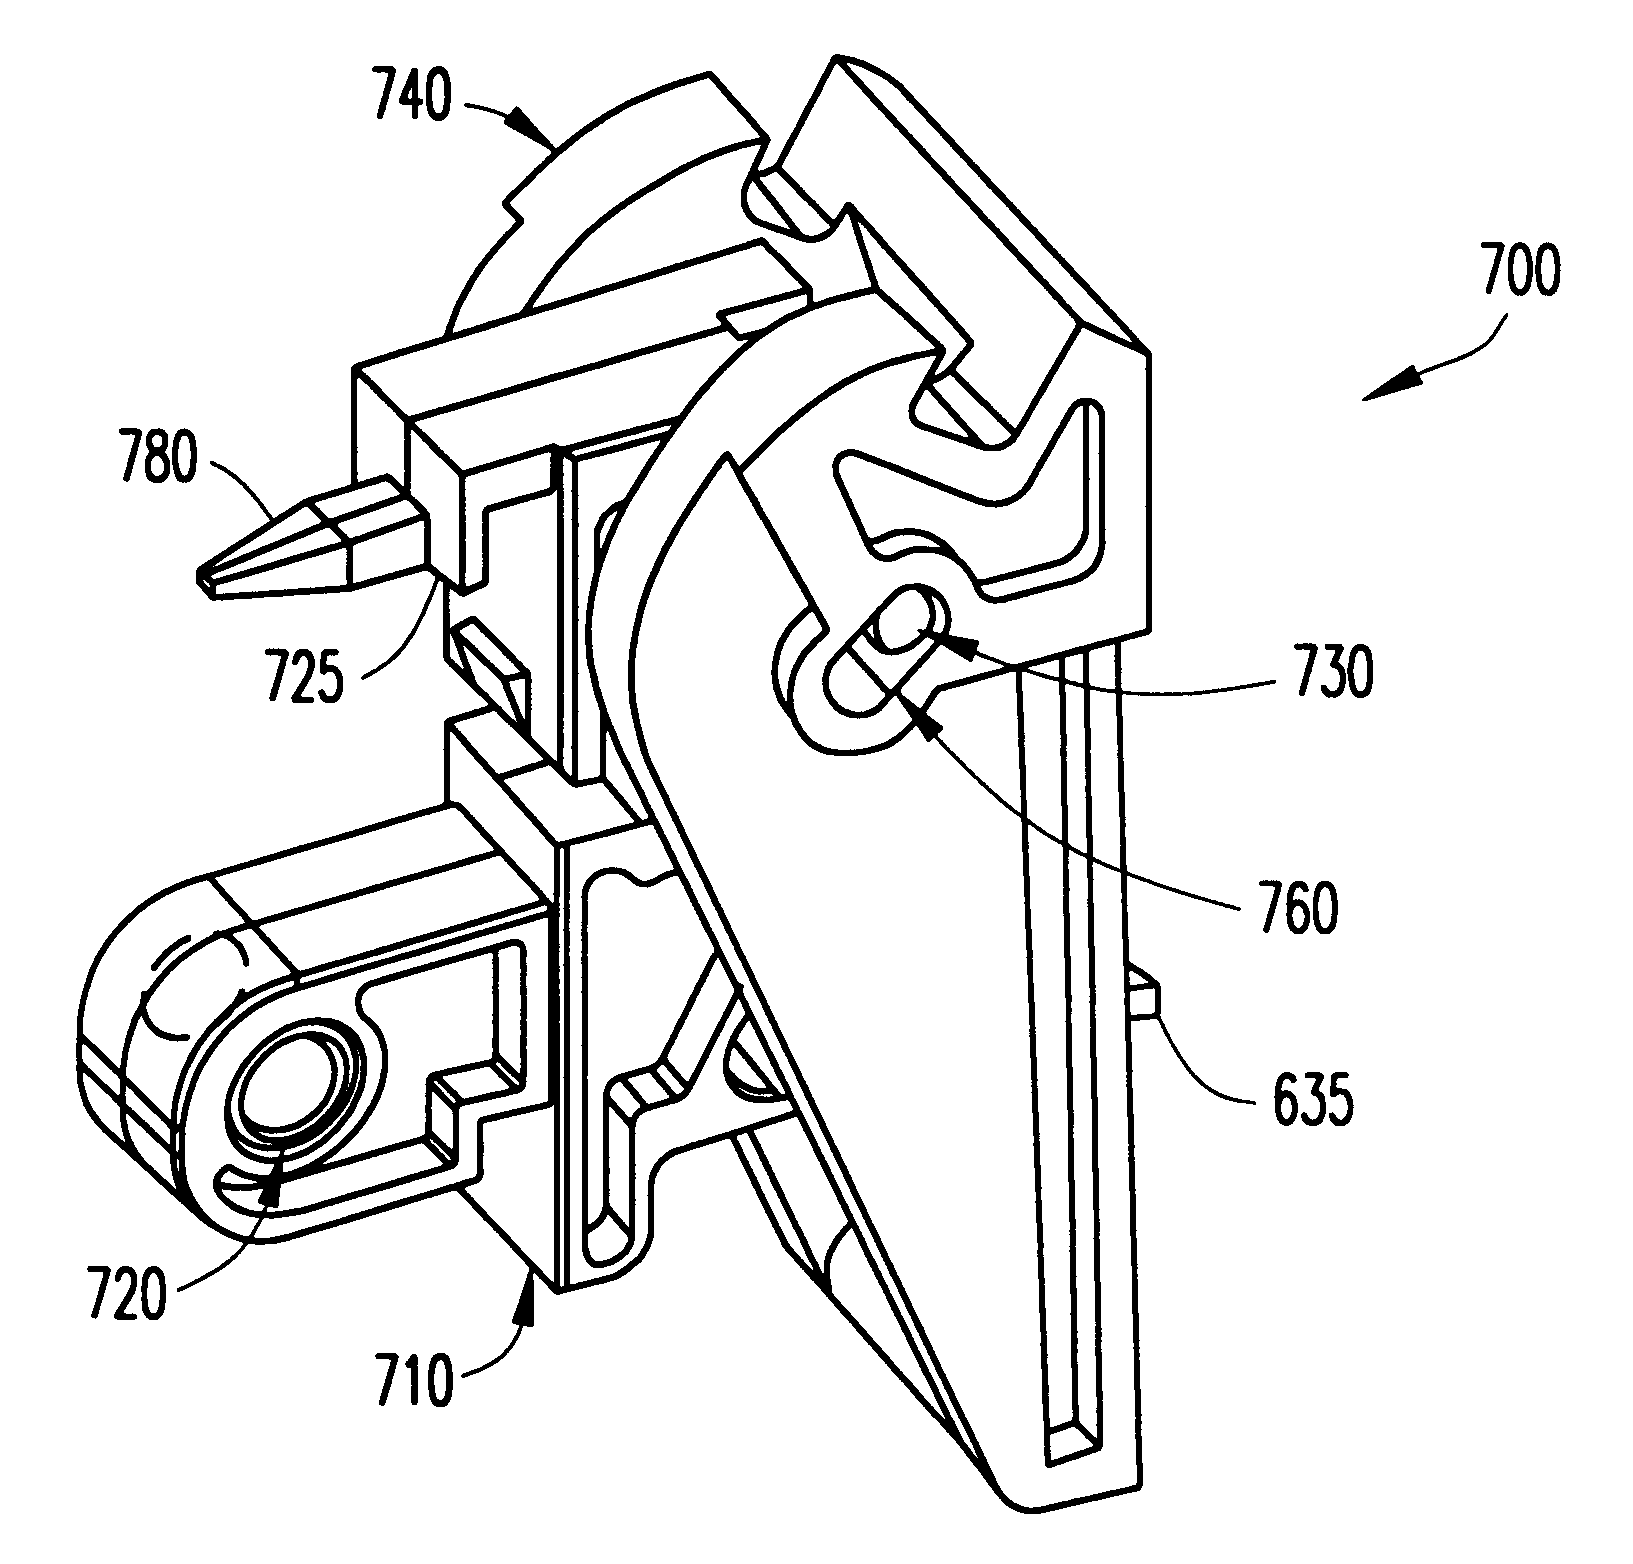 patent us6361335  ejector with board mount and alignment features